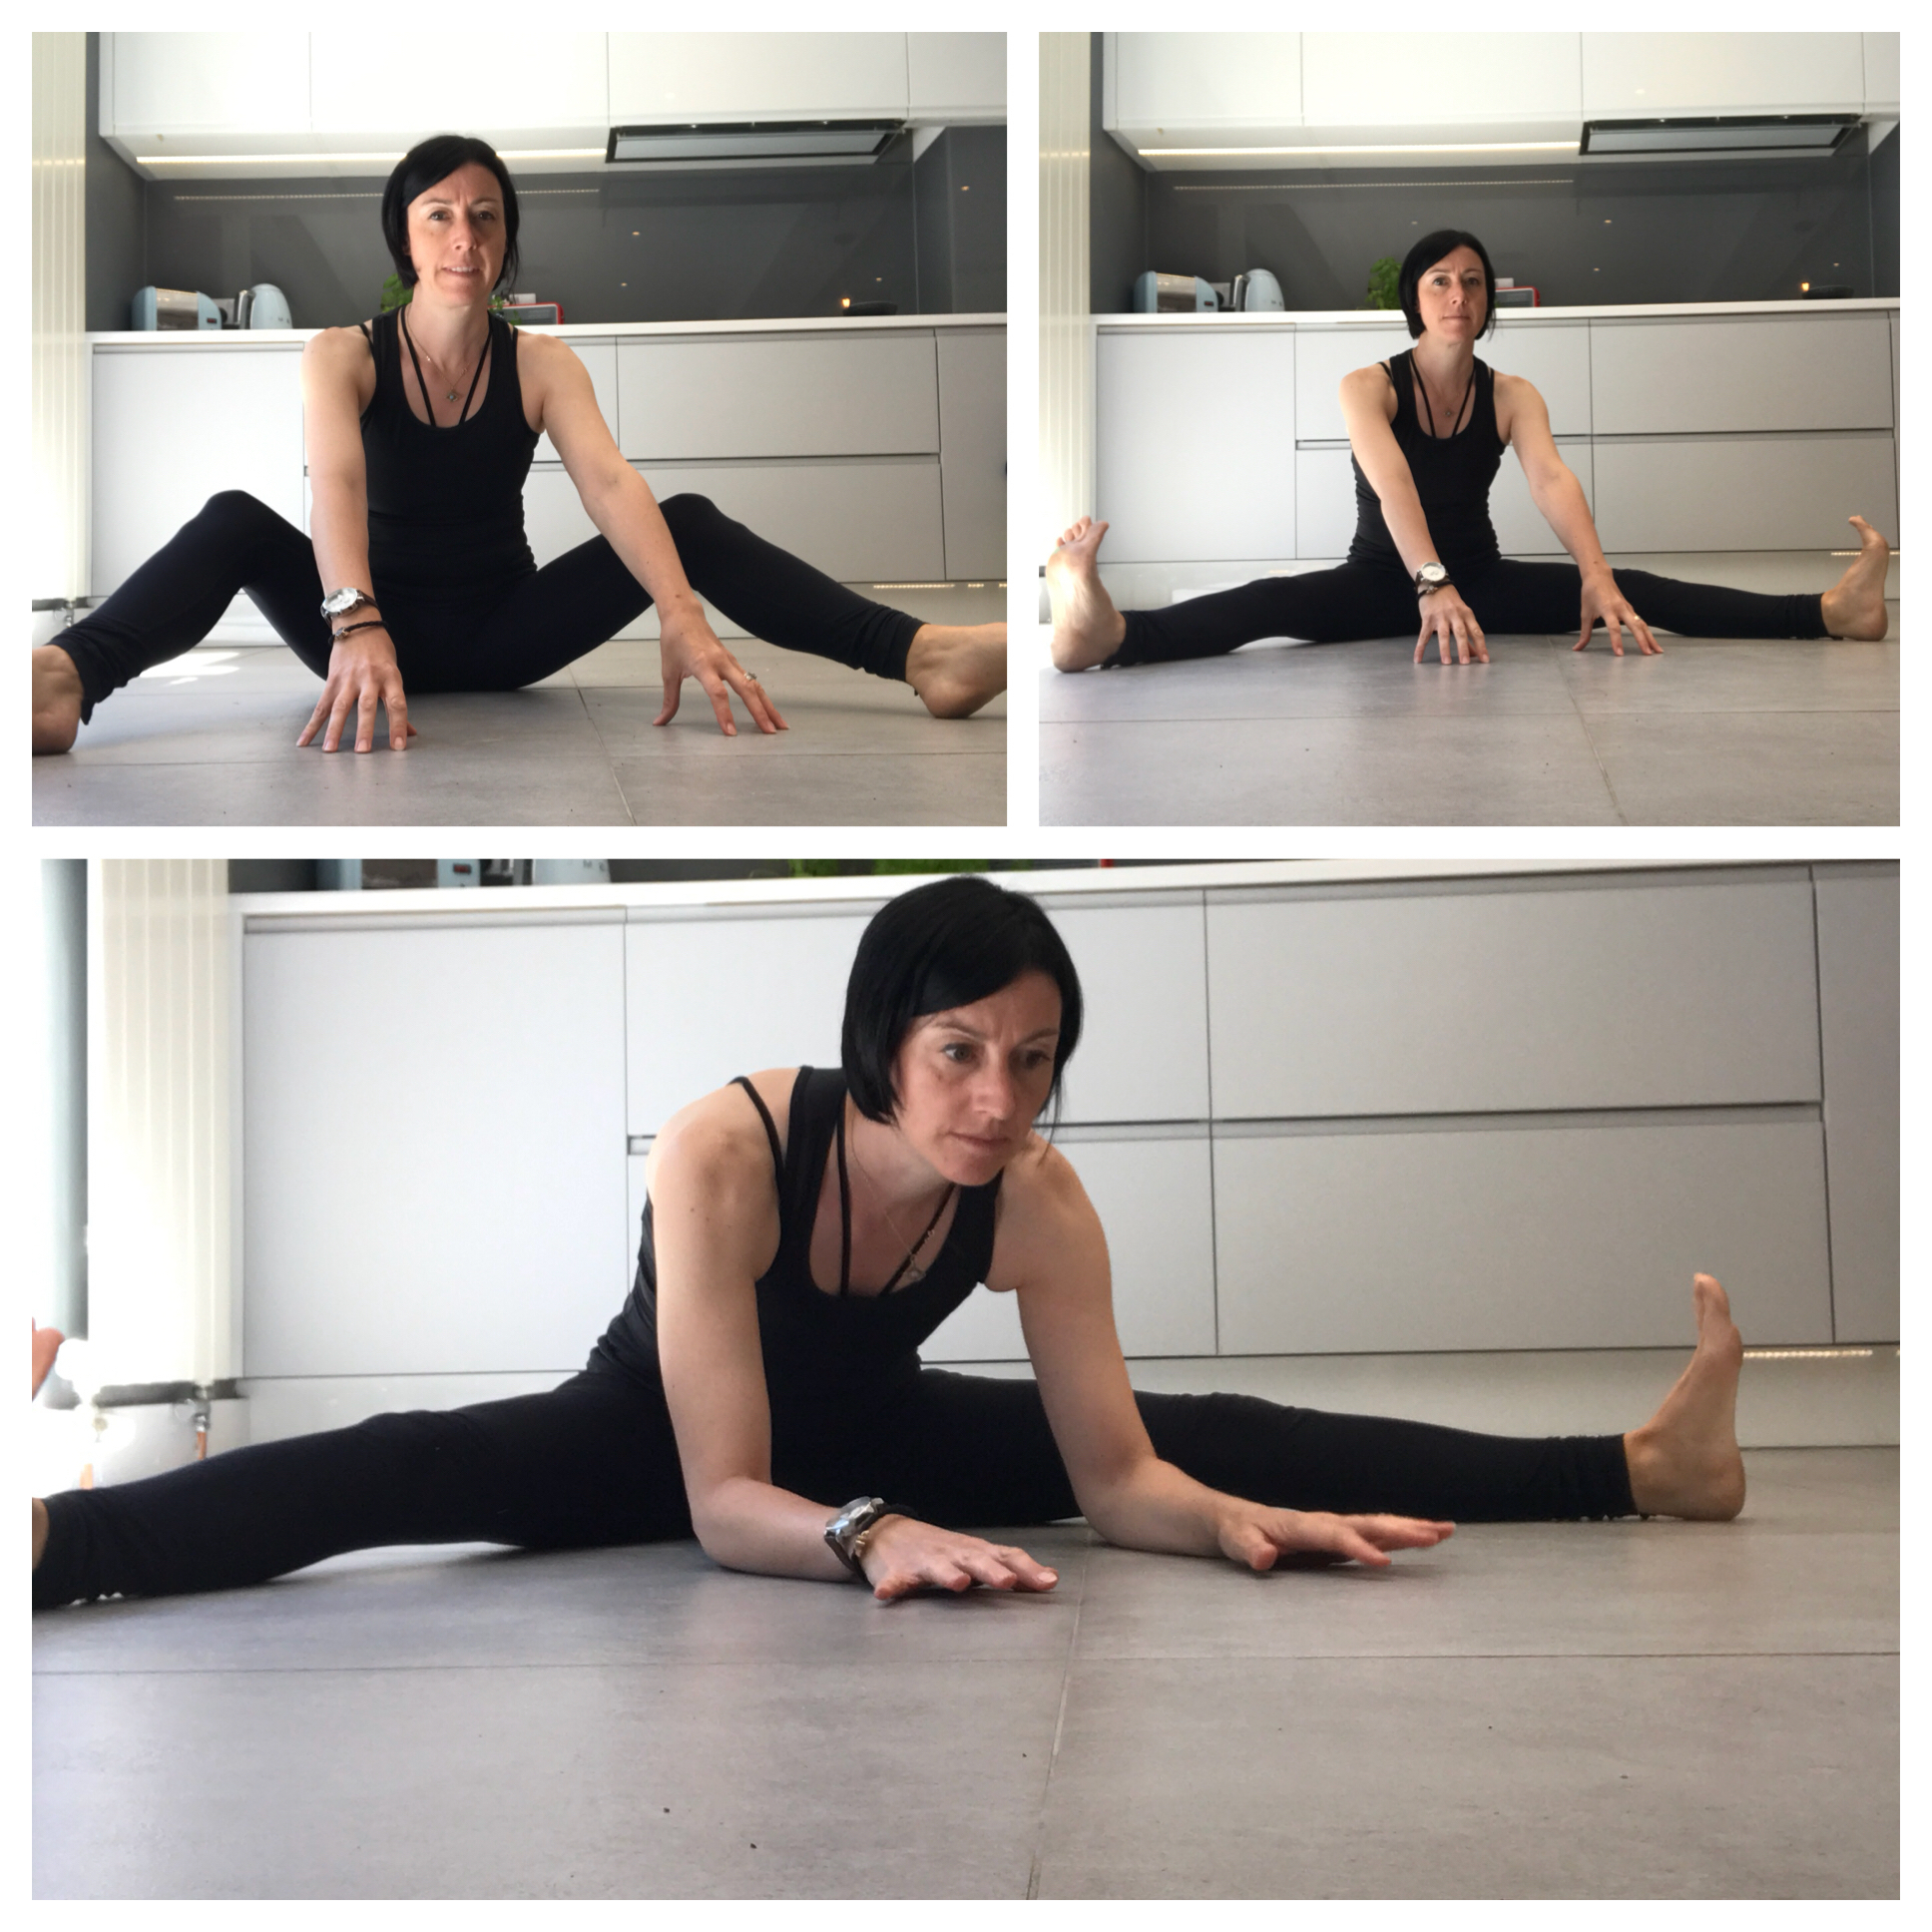 There are a few stages to get going. You can start with bent legs and just lean forward. Eventually you should be able to get the legs straight and the elbows on the floor. Then you've done it! I'll be posting video instructions. Follow me on Instagram  @ruthjaneyoga